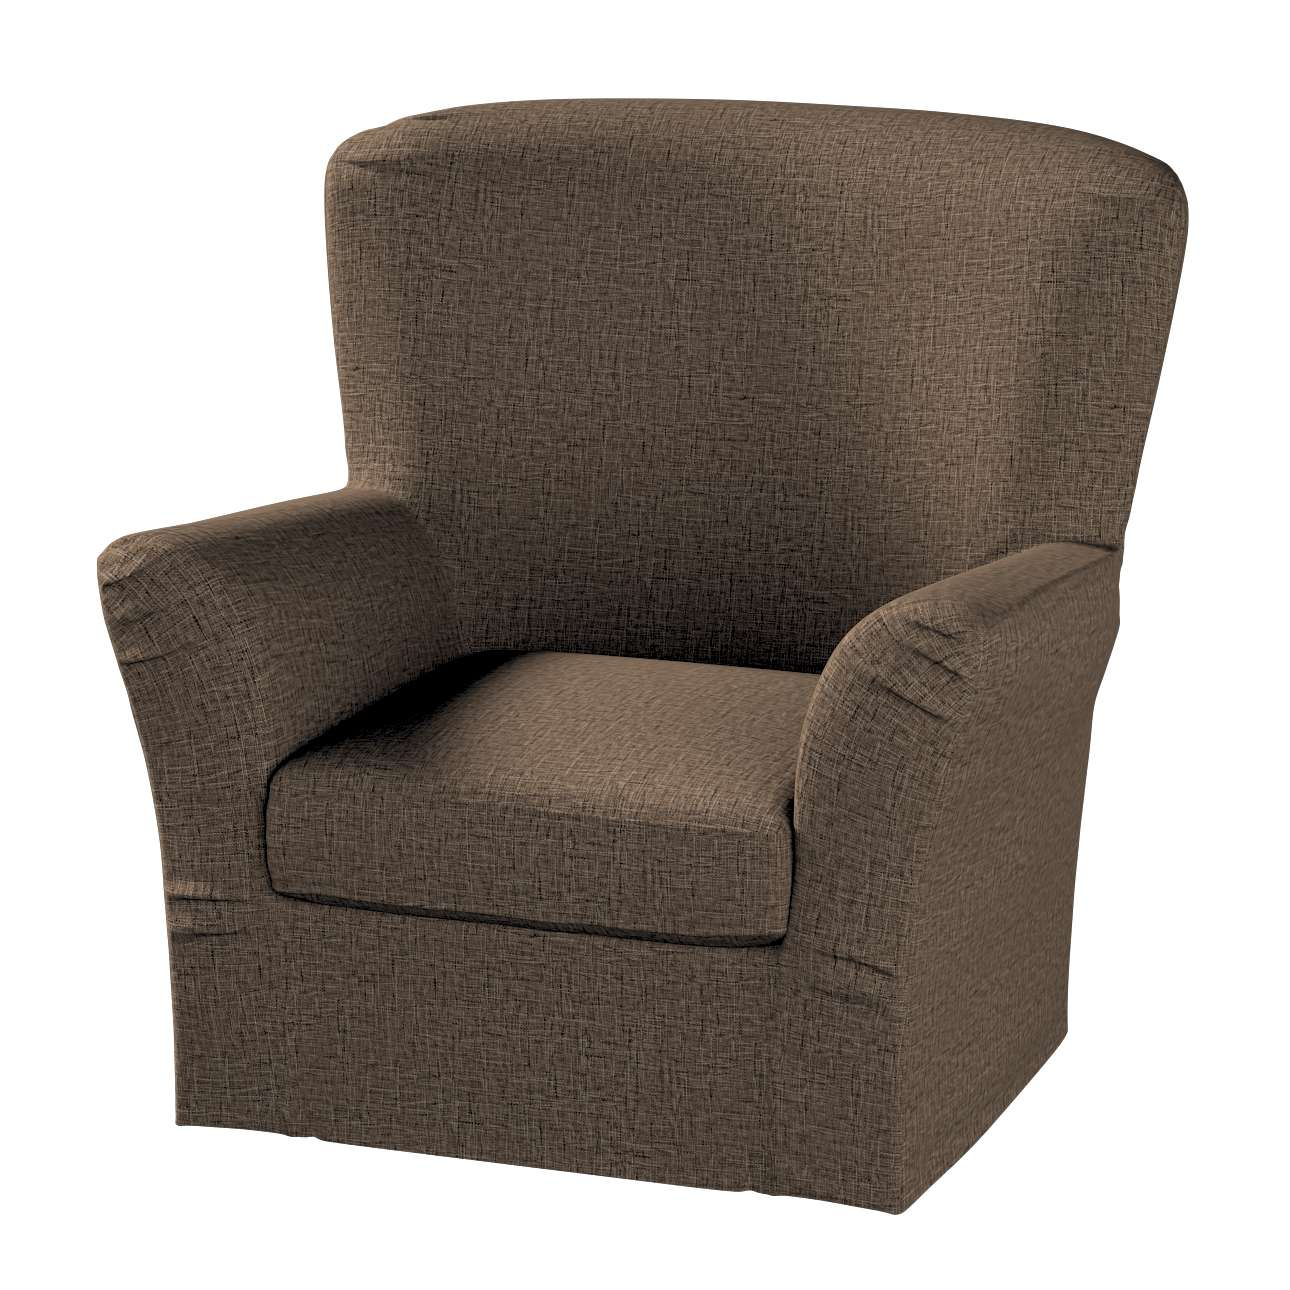 Tomelilla armchair  Tomelilla armchair in collection Living, fabric: 106-92